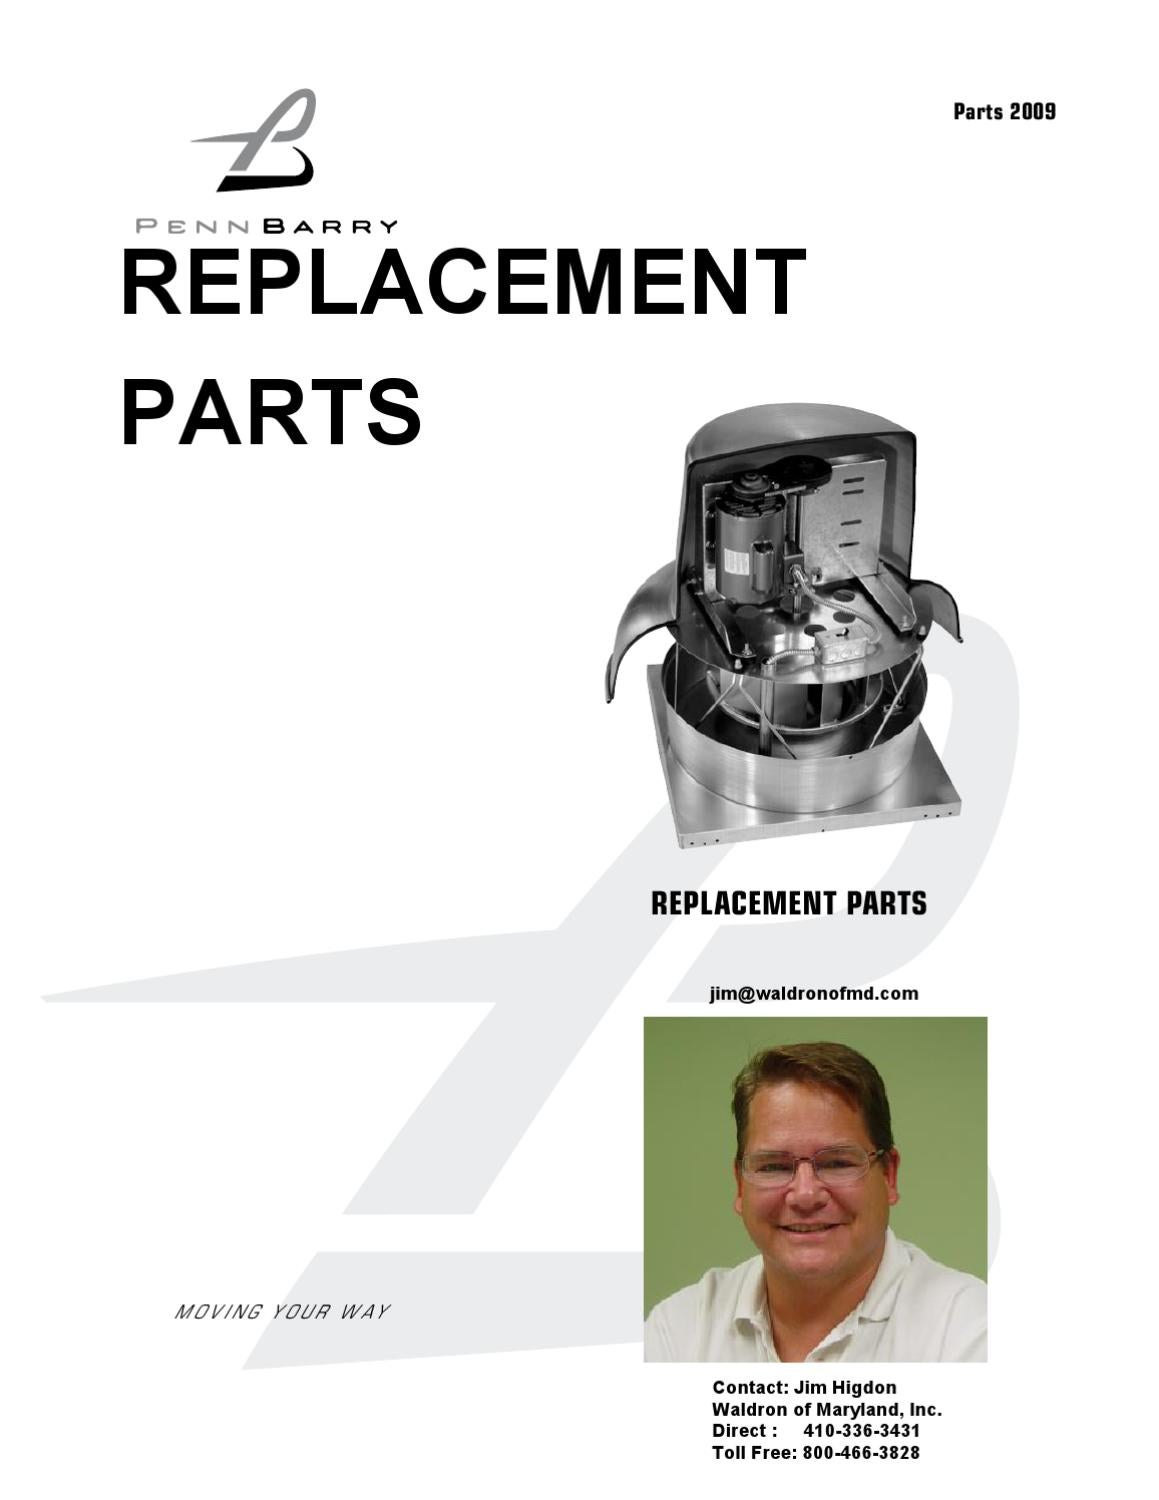 pennbarry replacement parts by waldron